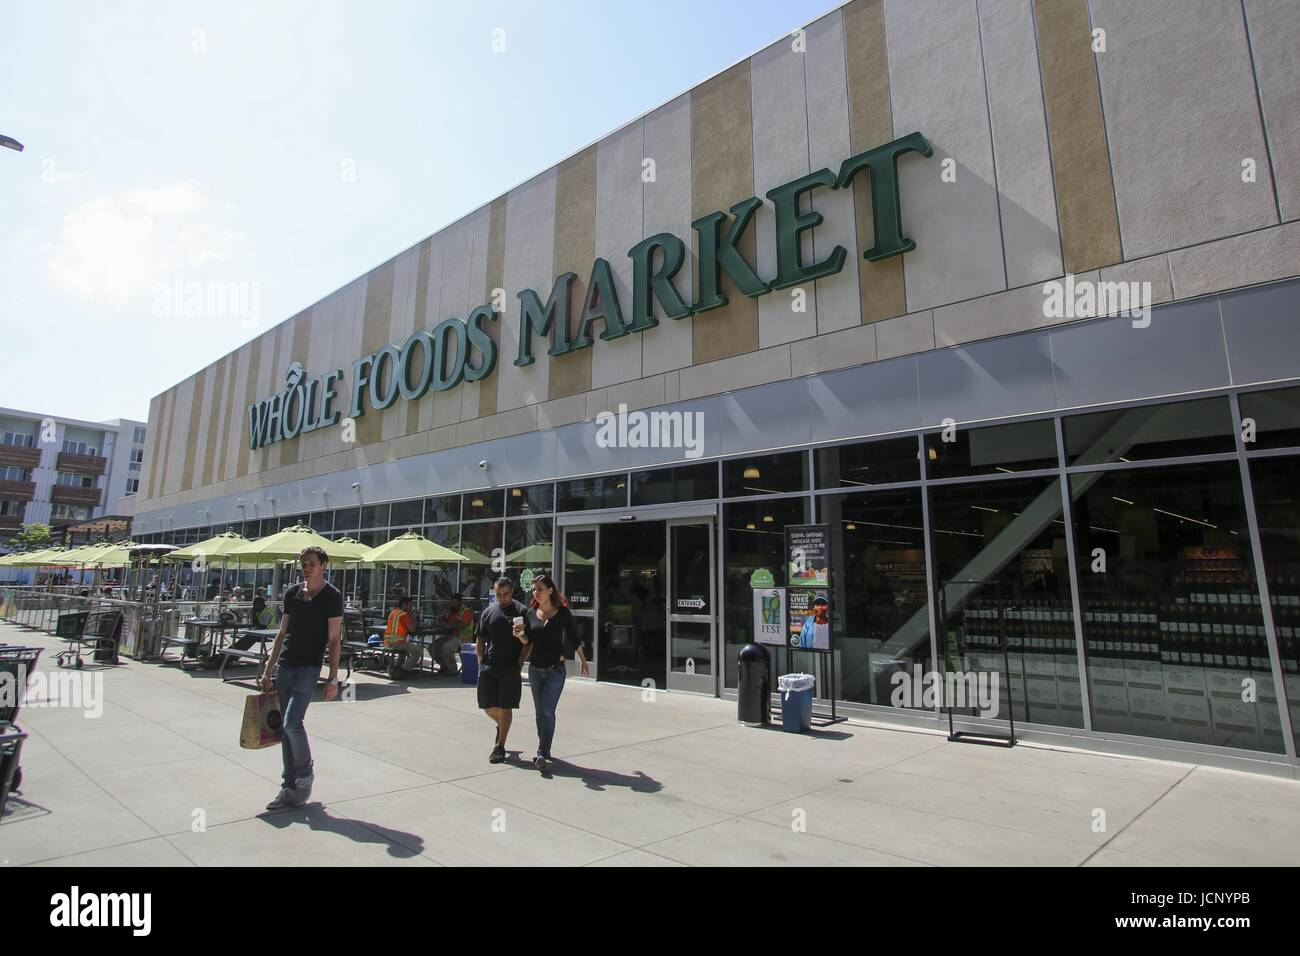 June 16, 2017 - FILE PHOTO - Amazon has acquired Whole Foods, a move that marks the e-commerce giant's official - Stock Image